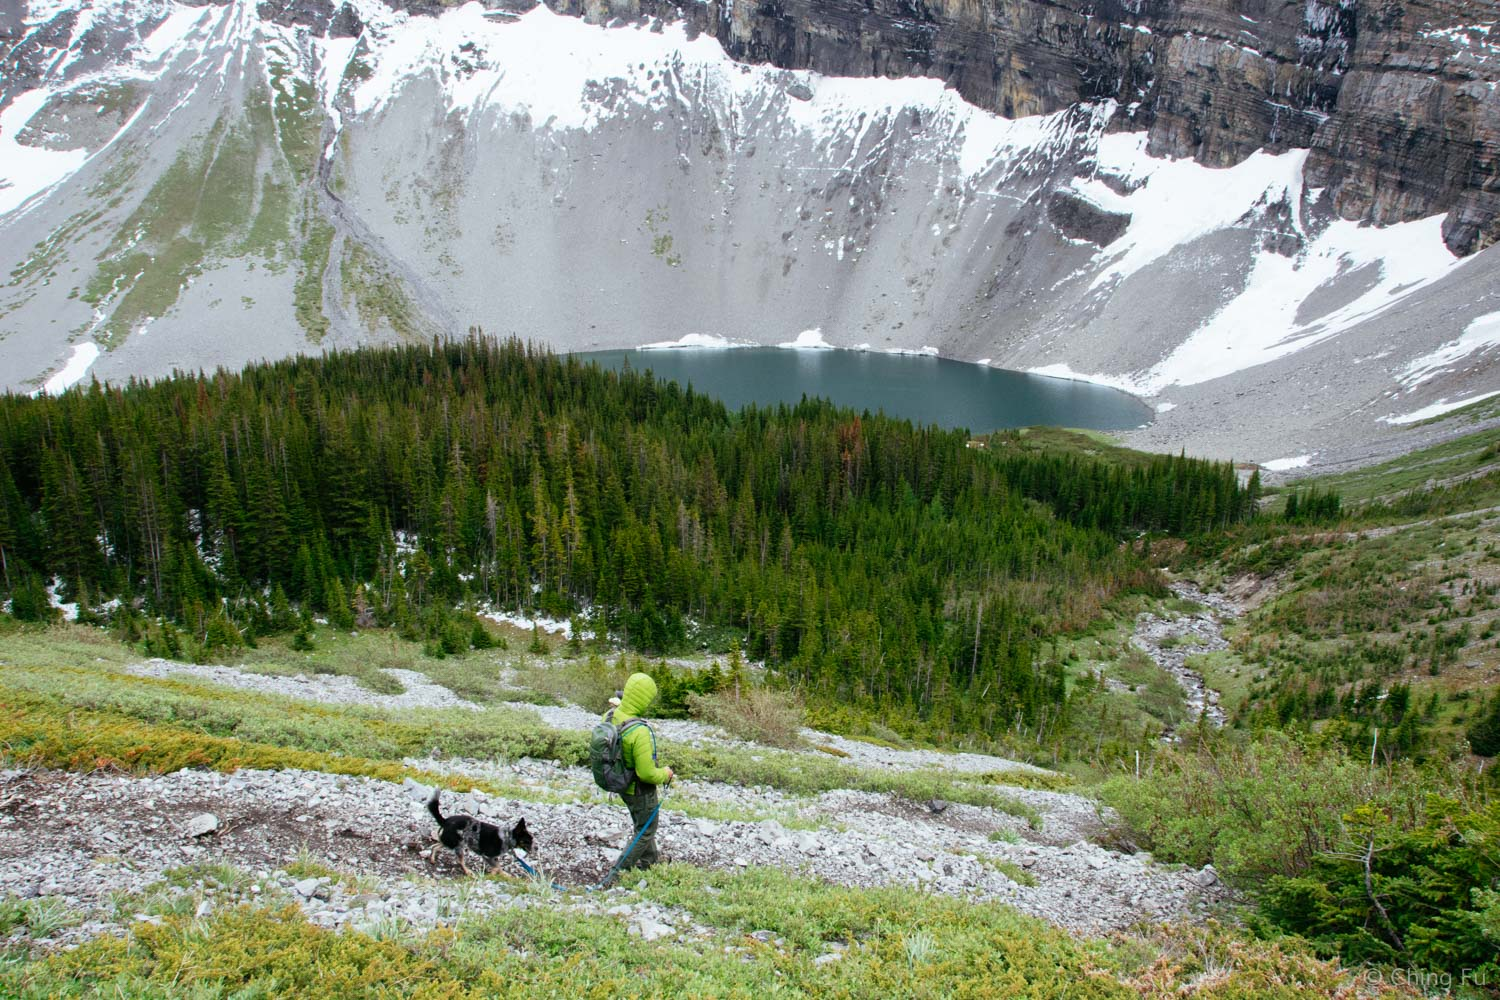 Hiking back down the steep switchback section to Bourgeau Lake.